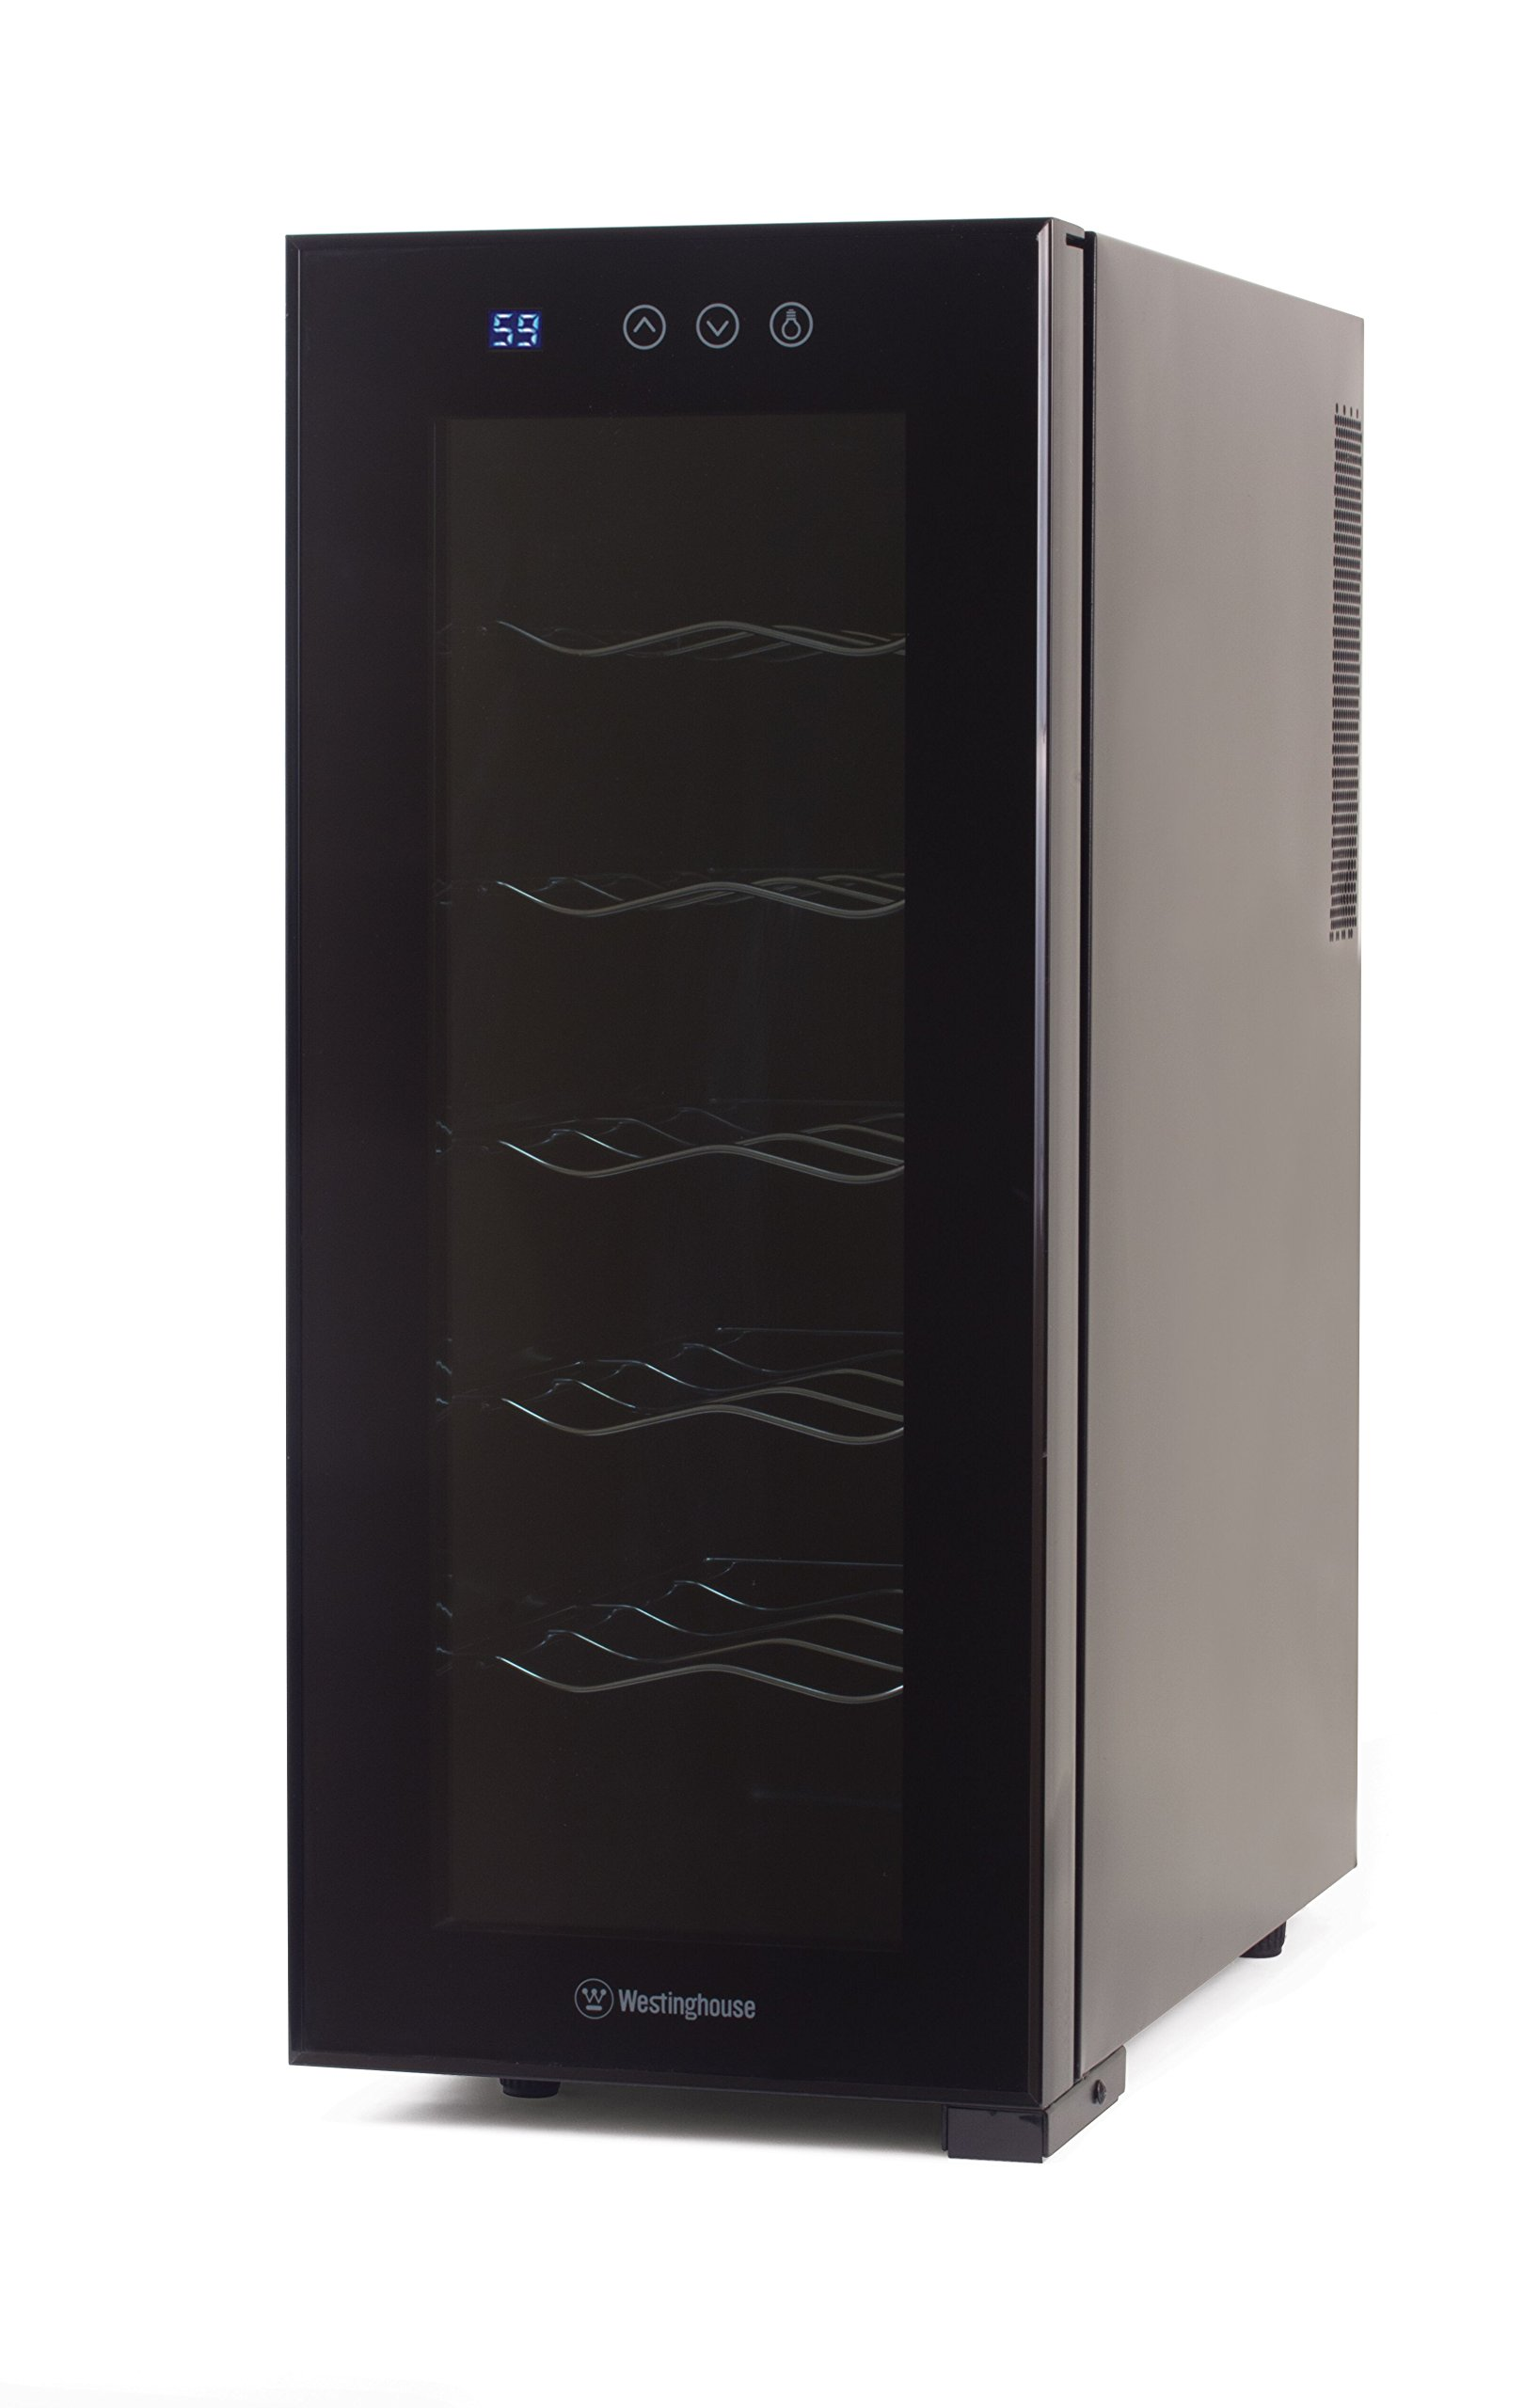 Westinghouse WWT120TB Thermal Electric 12 Bottle Wine Cellar with Touch Panel Adjustable Thermostat and Digital Read Out, Black